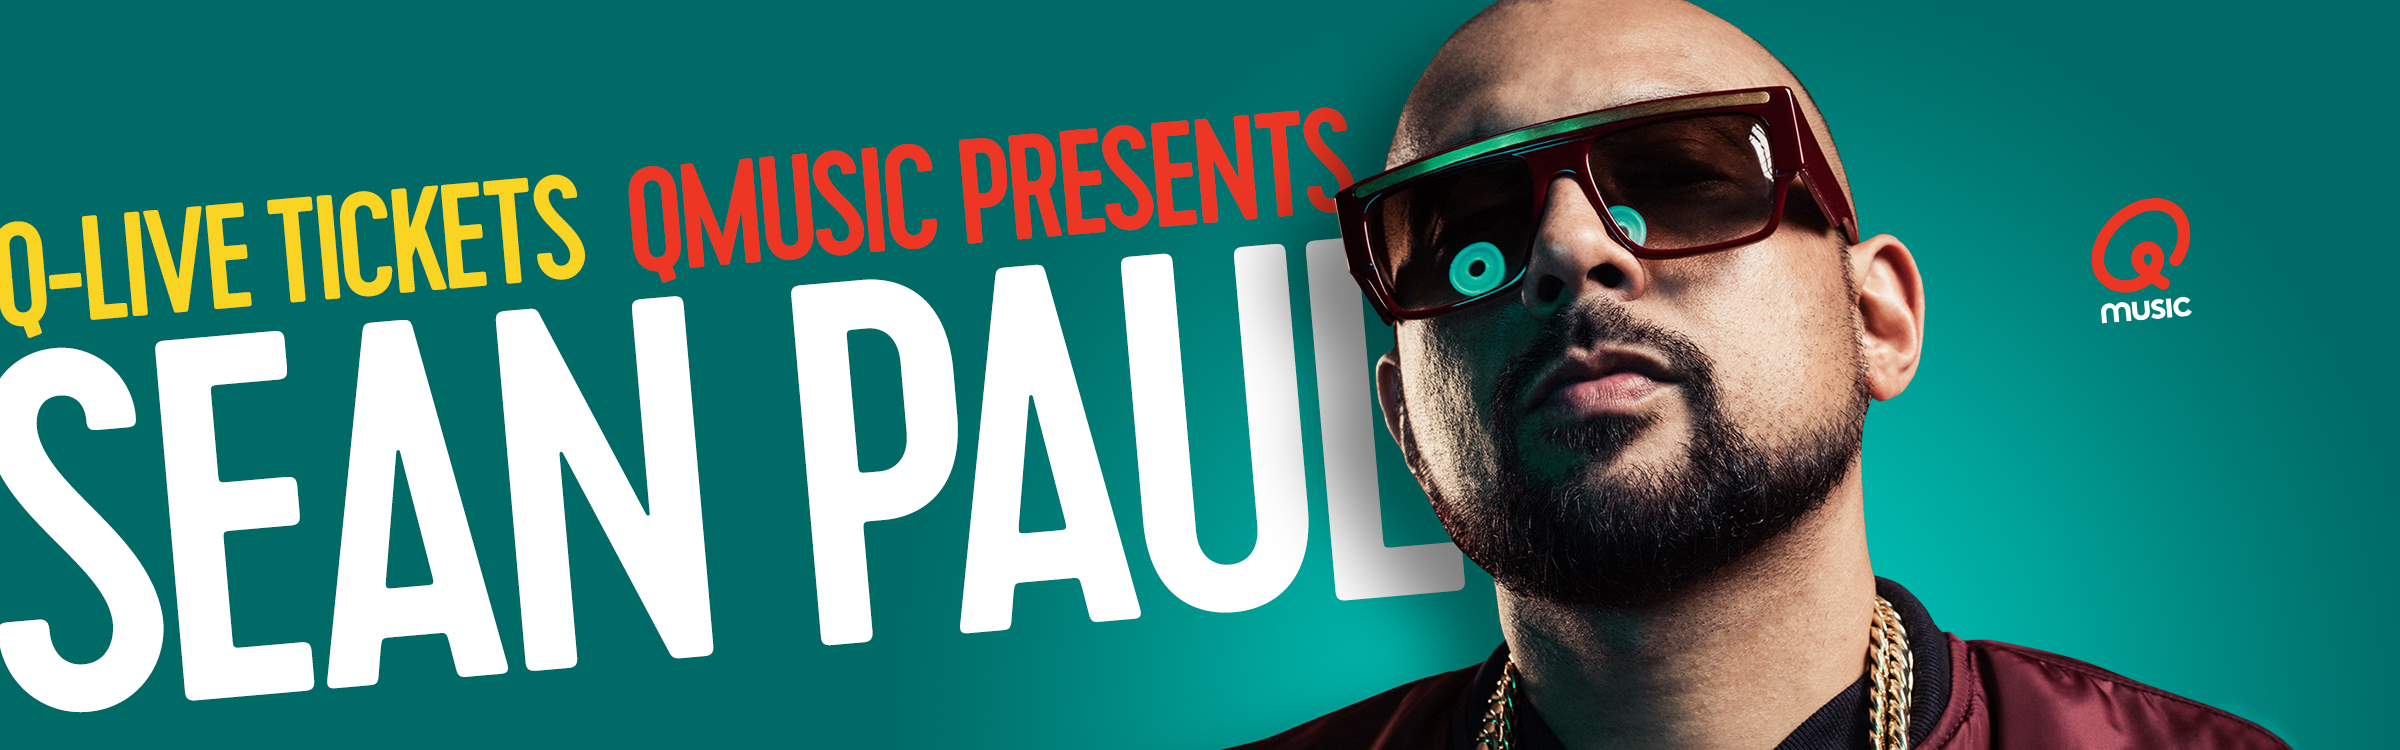 Qmusic actionheader seanpaul